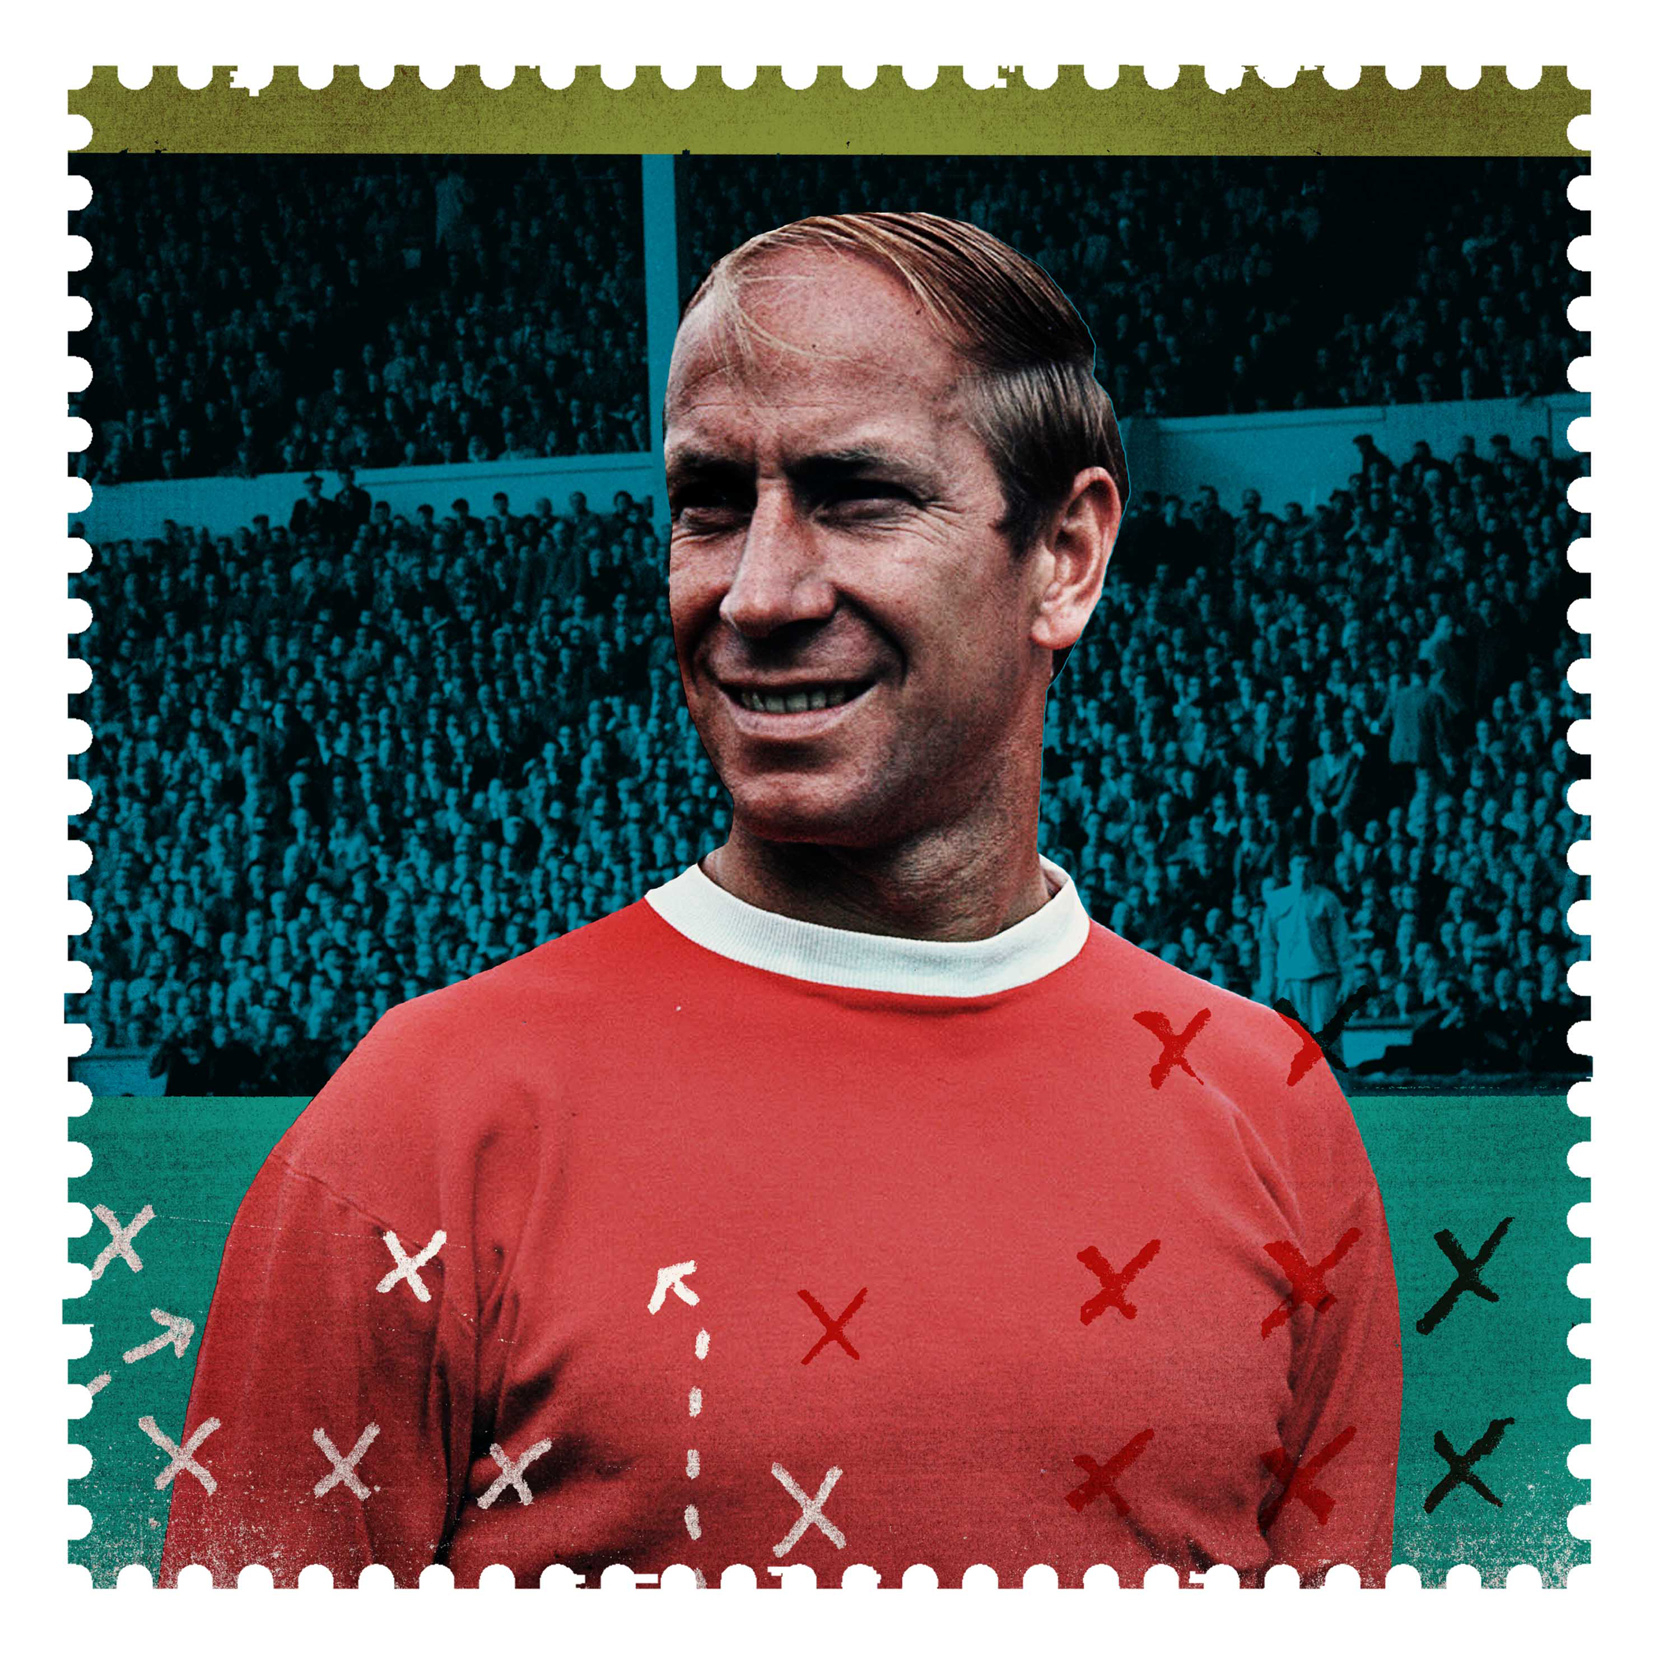 Bobby Moore 2 / Royal Mail